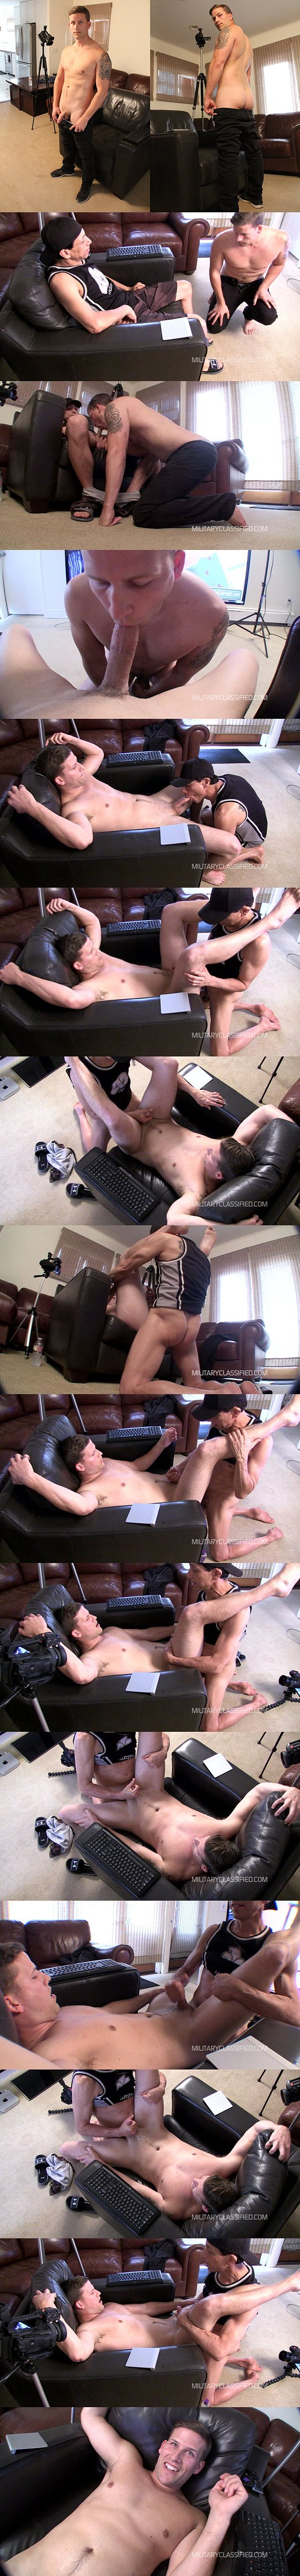 Rob barebacks straight military dude Bryce's tight virgin ass at Militaryclassified 02